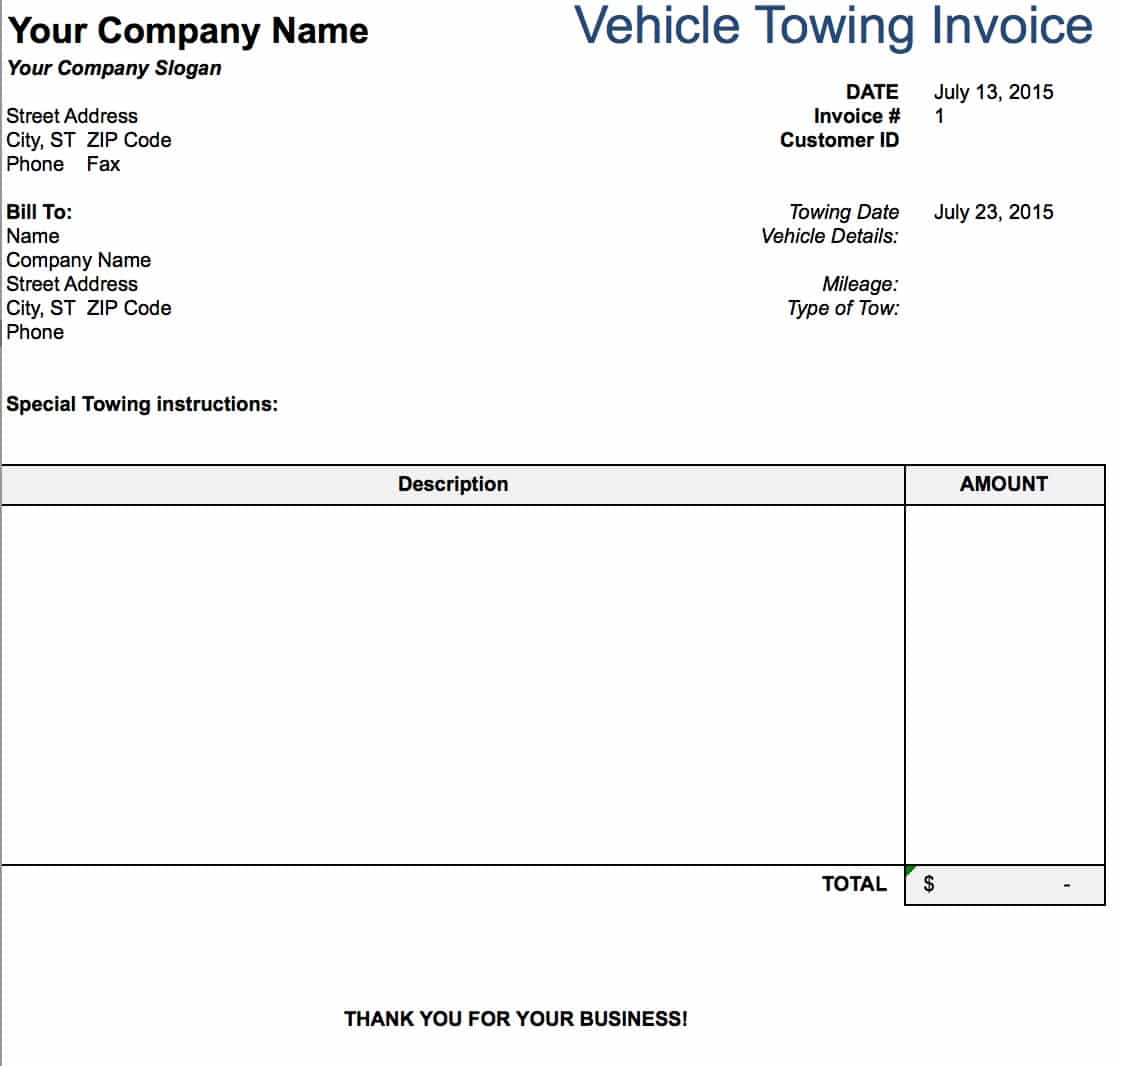 Free Tow Service Invoice Template Excel PDF Word Doc - Free invoices to print for service business